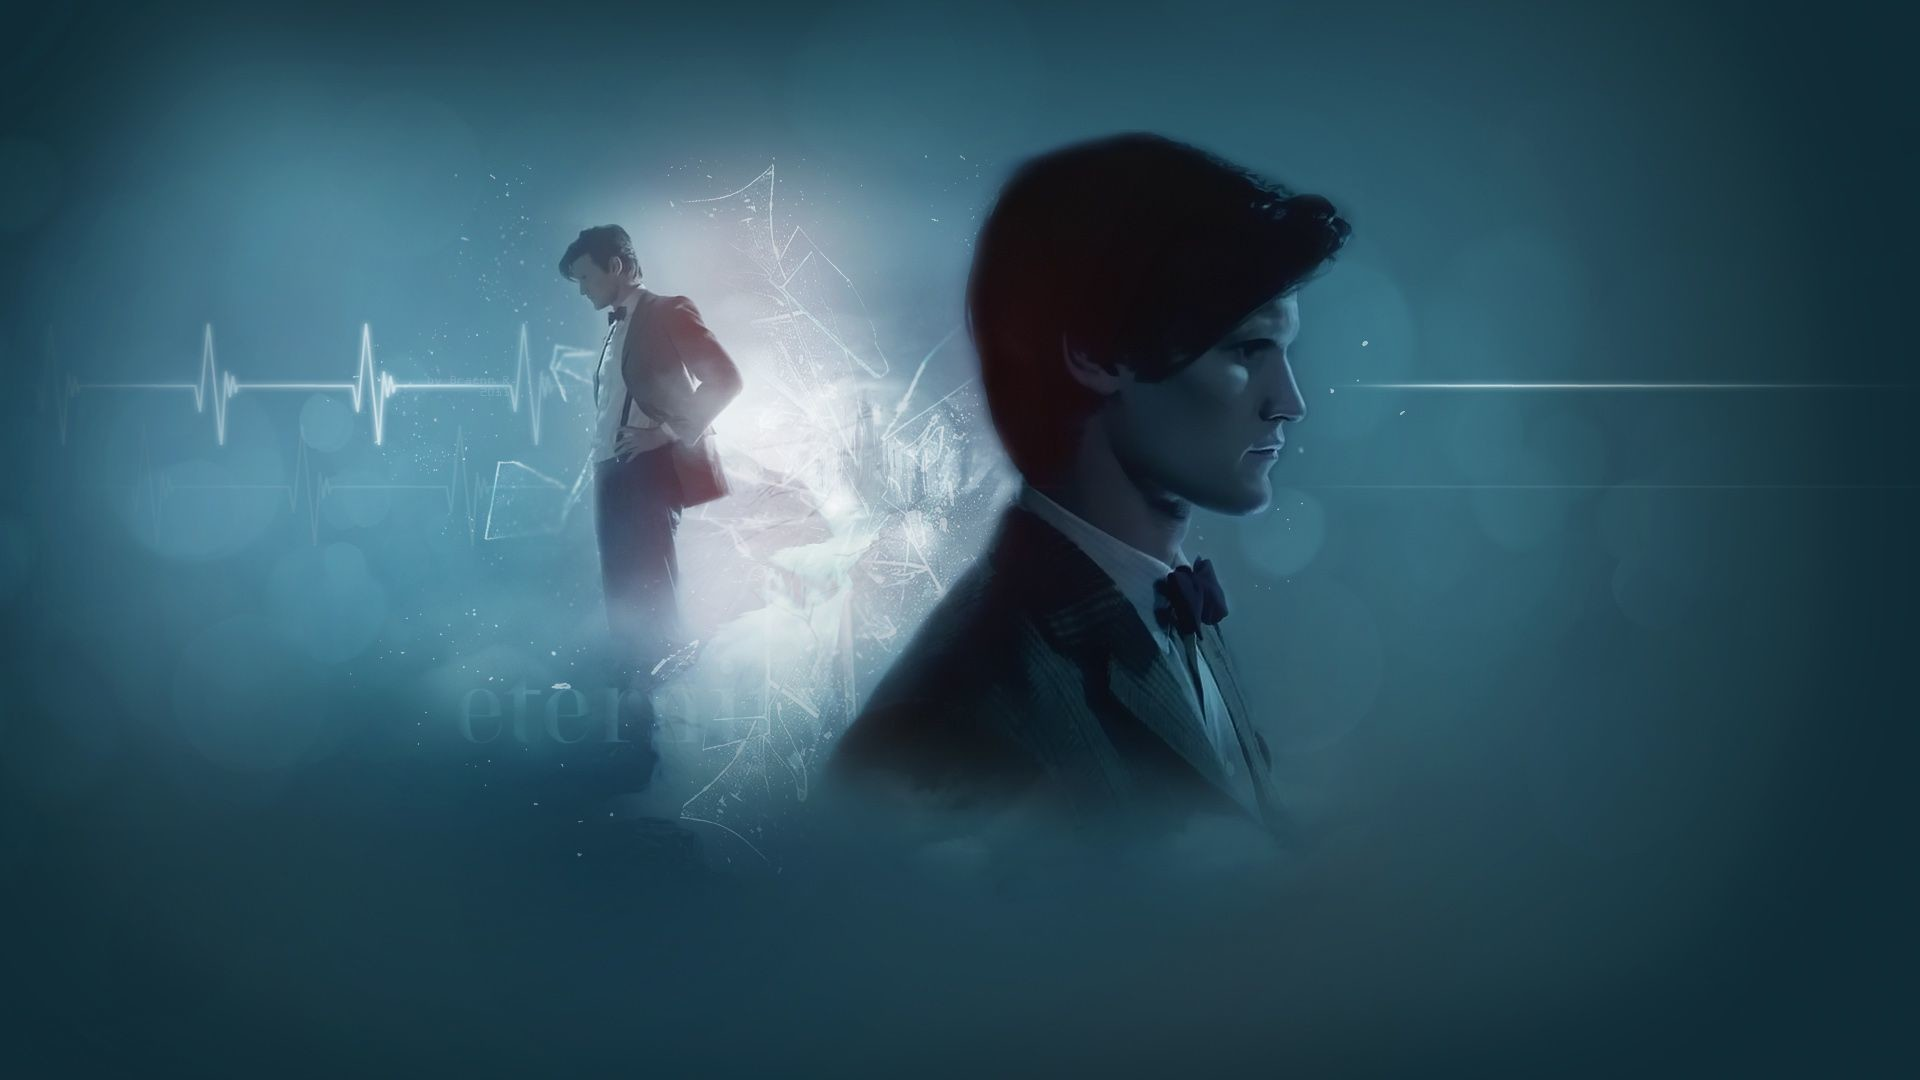 Great Wallpaper Mac Doctor Who - 1148082-widescreen-doctor-who-matt-smith-wallpapers-1920x1080-for-mac  Picture_458630.jpg